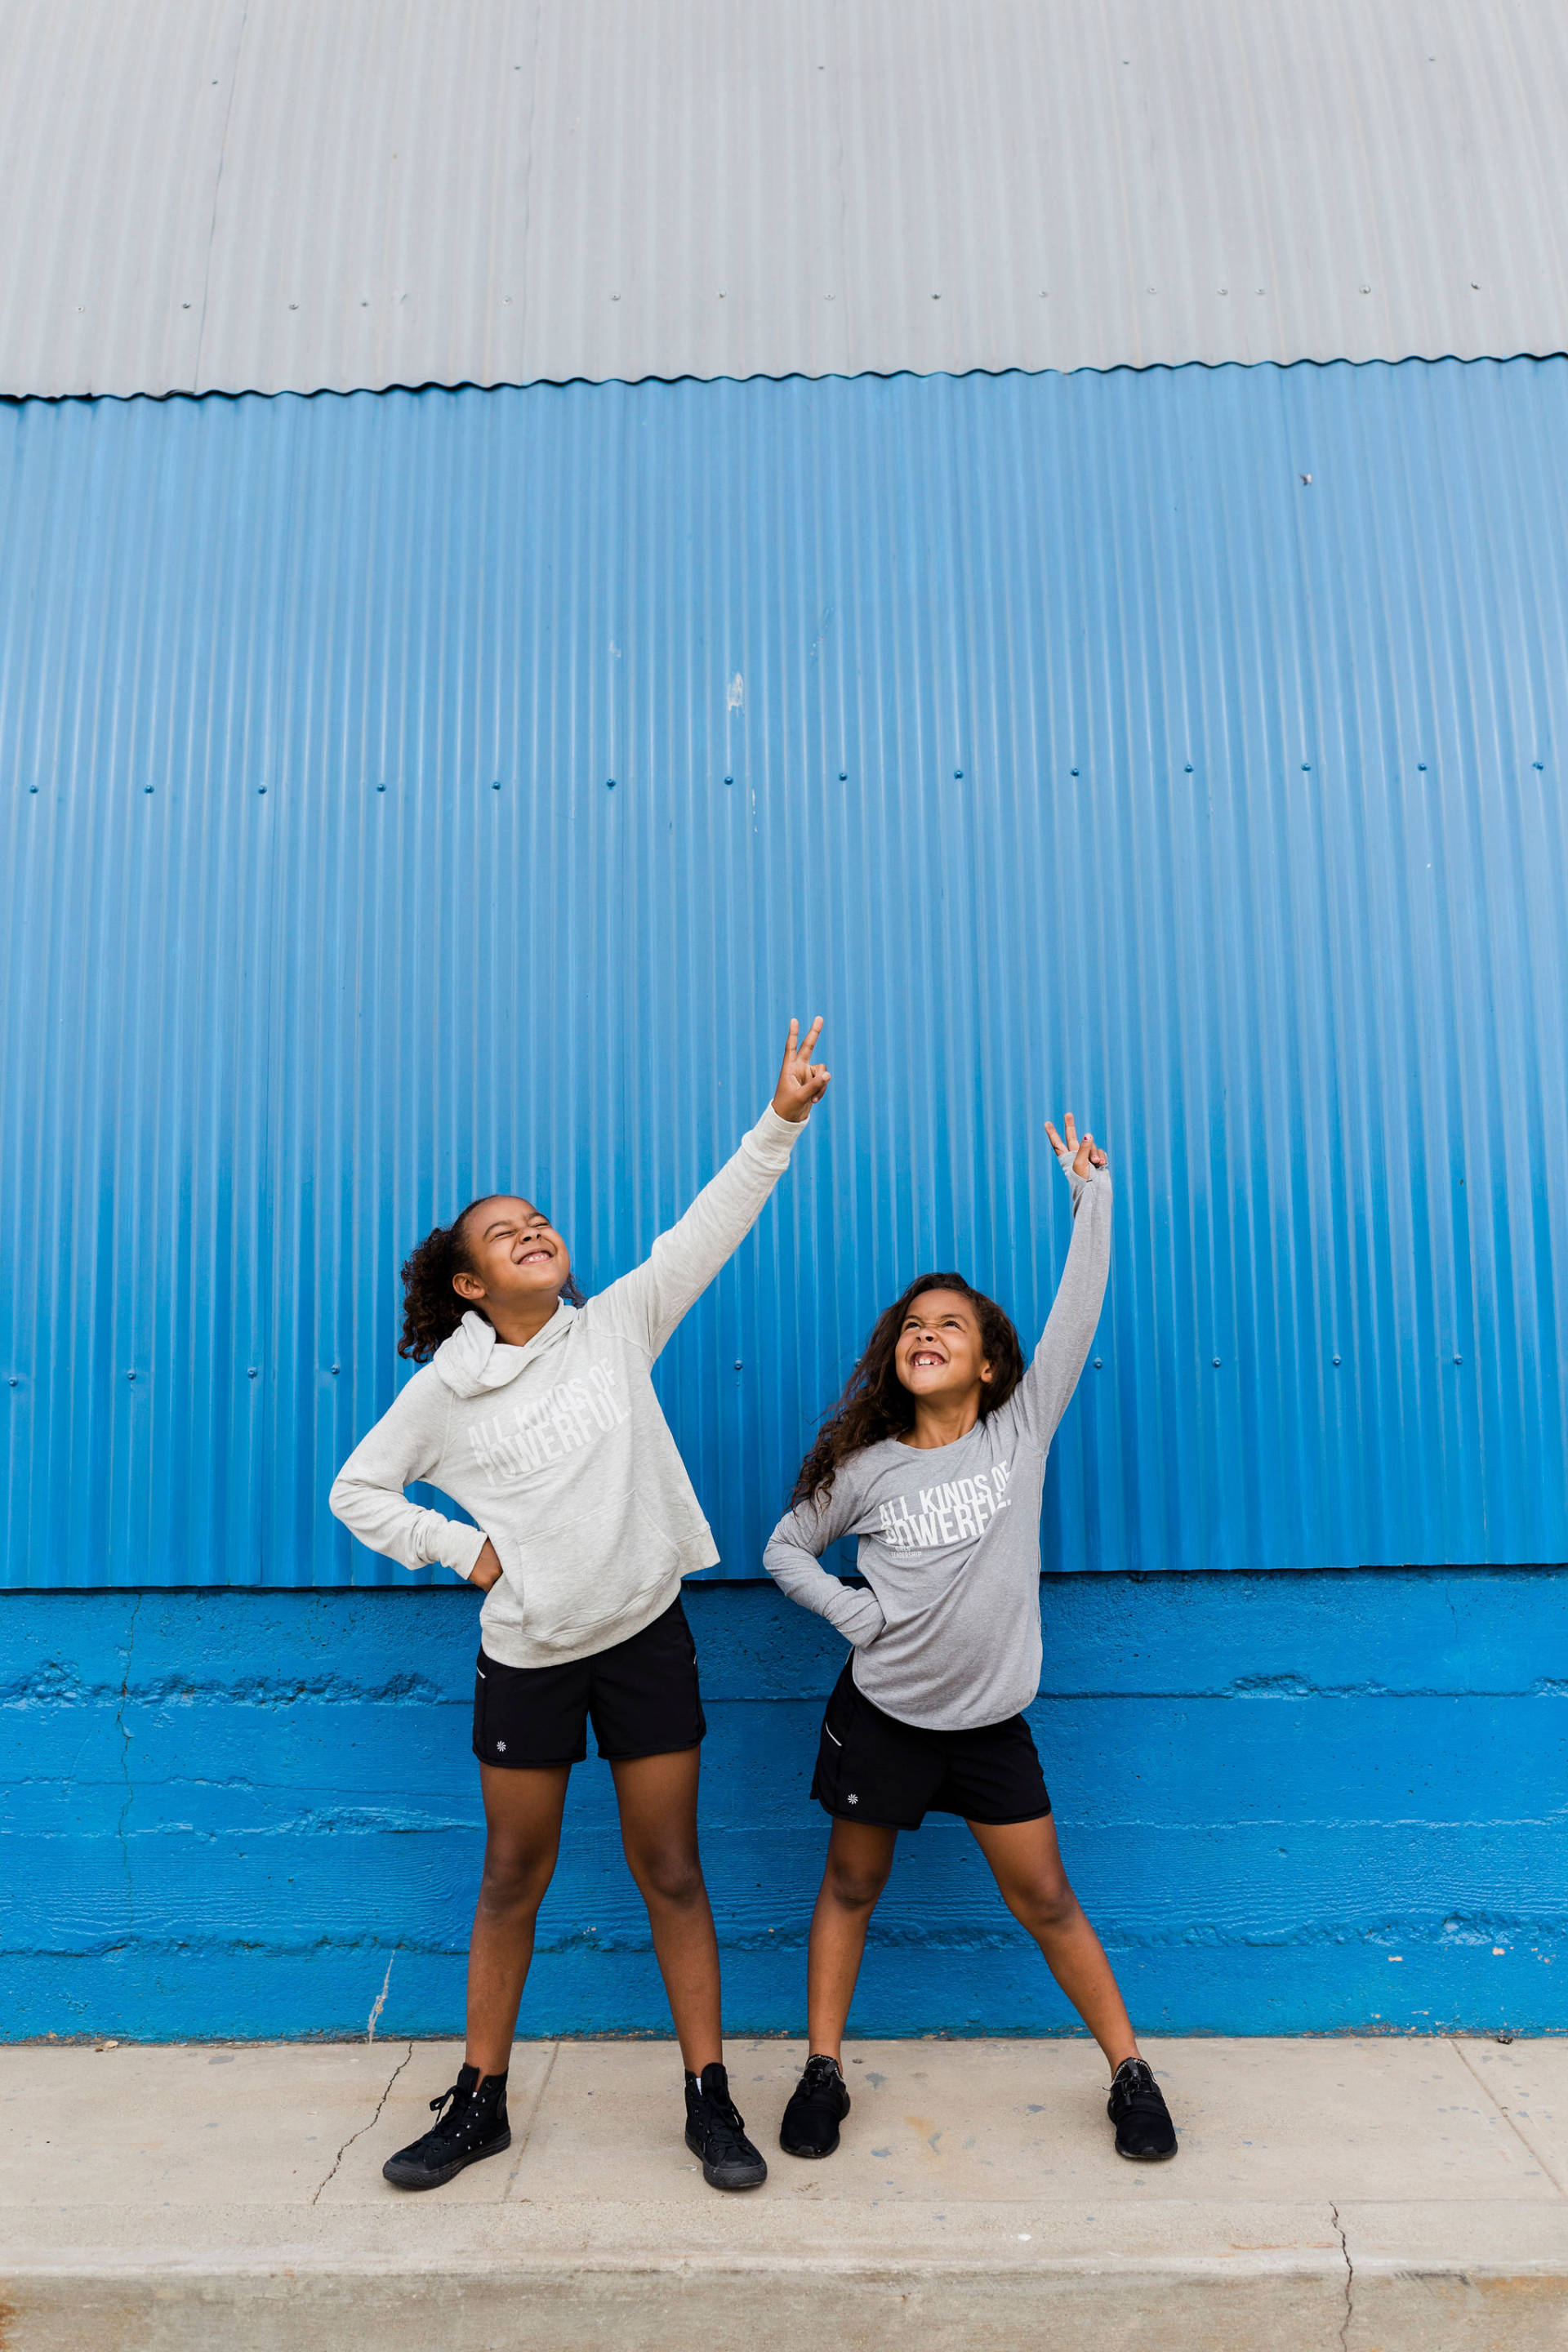 Today is the International Day of the Girl and we are so excited to celebrate with Athleta! Athleta is bringing together girls from all around the country to encourage them to find their voices, and then use them.